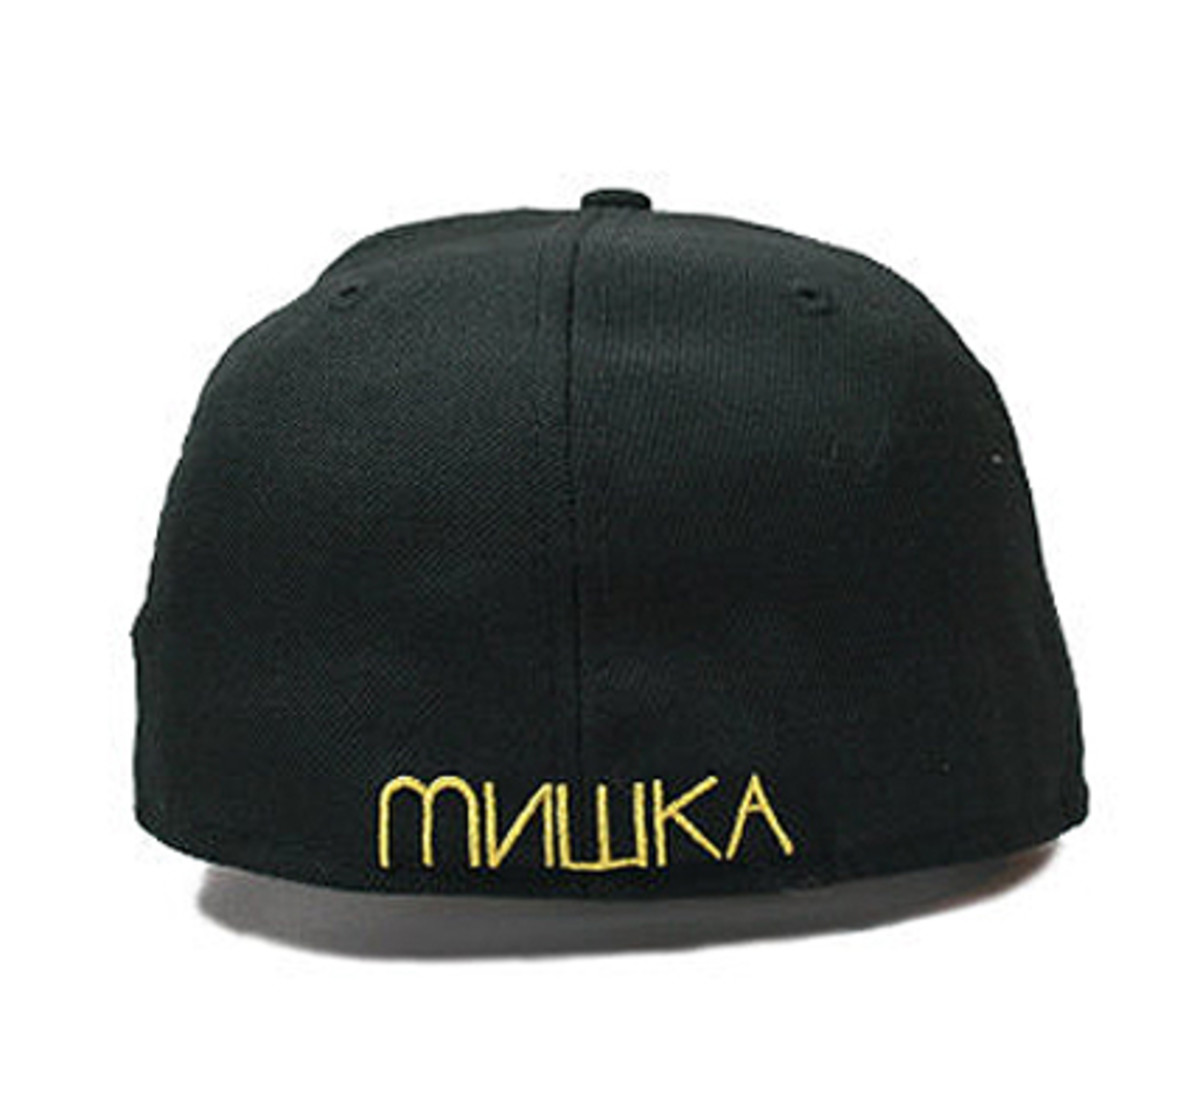 Mishka x New Era - New Fitted Cap Collection - Smiley Fitted